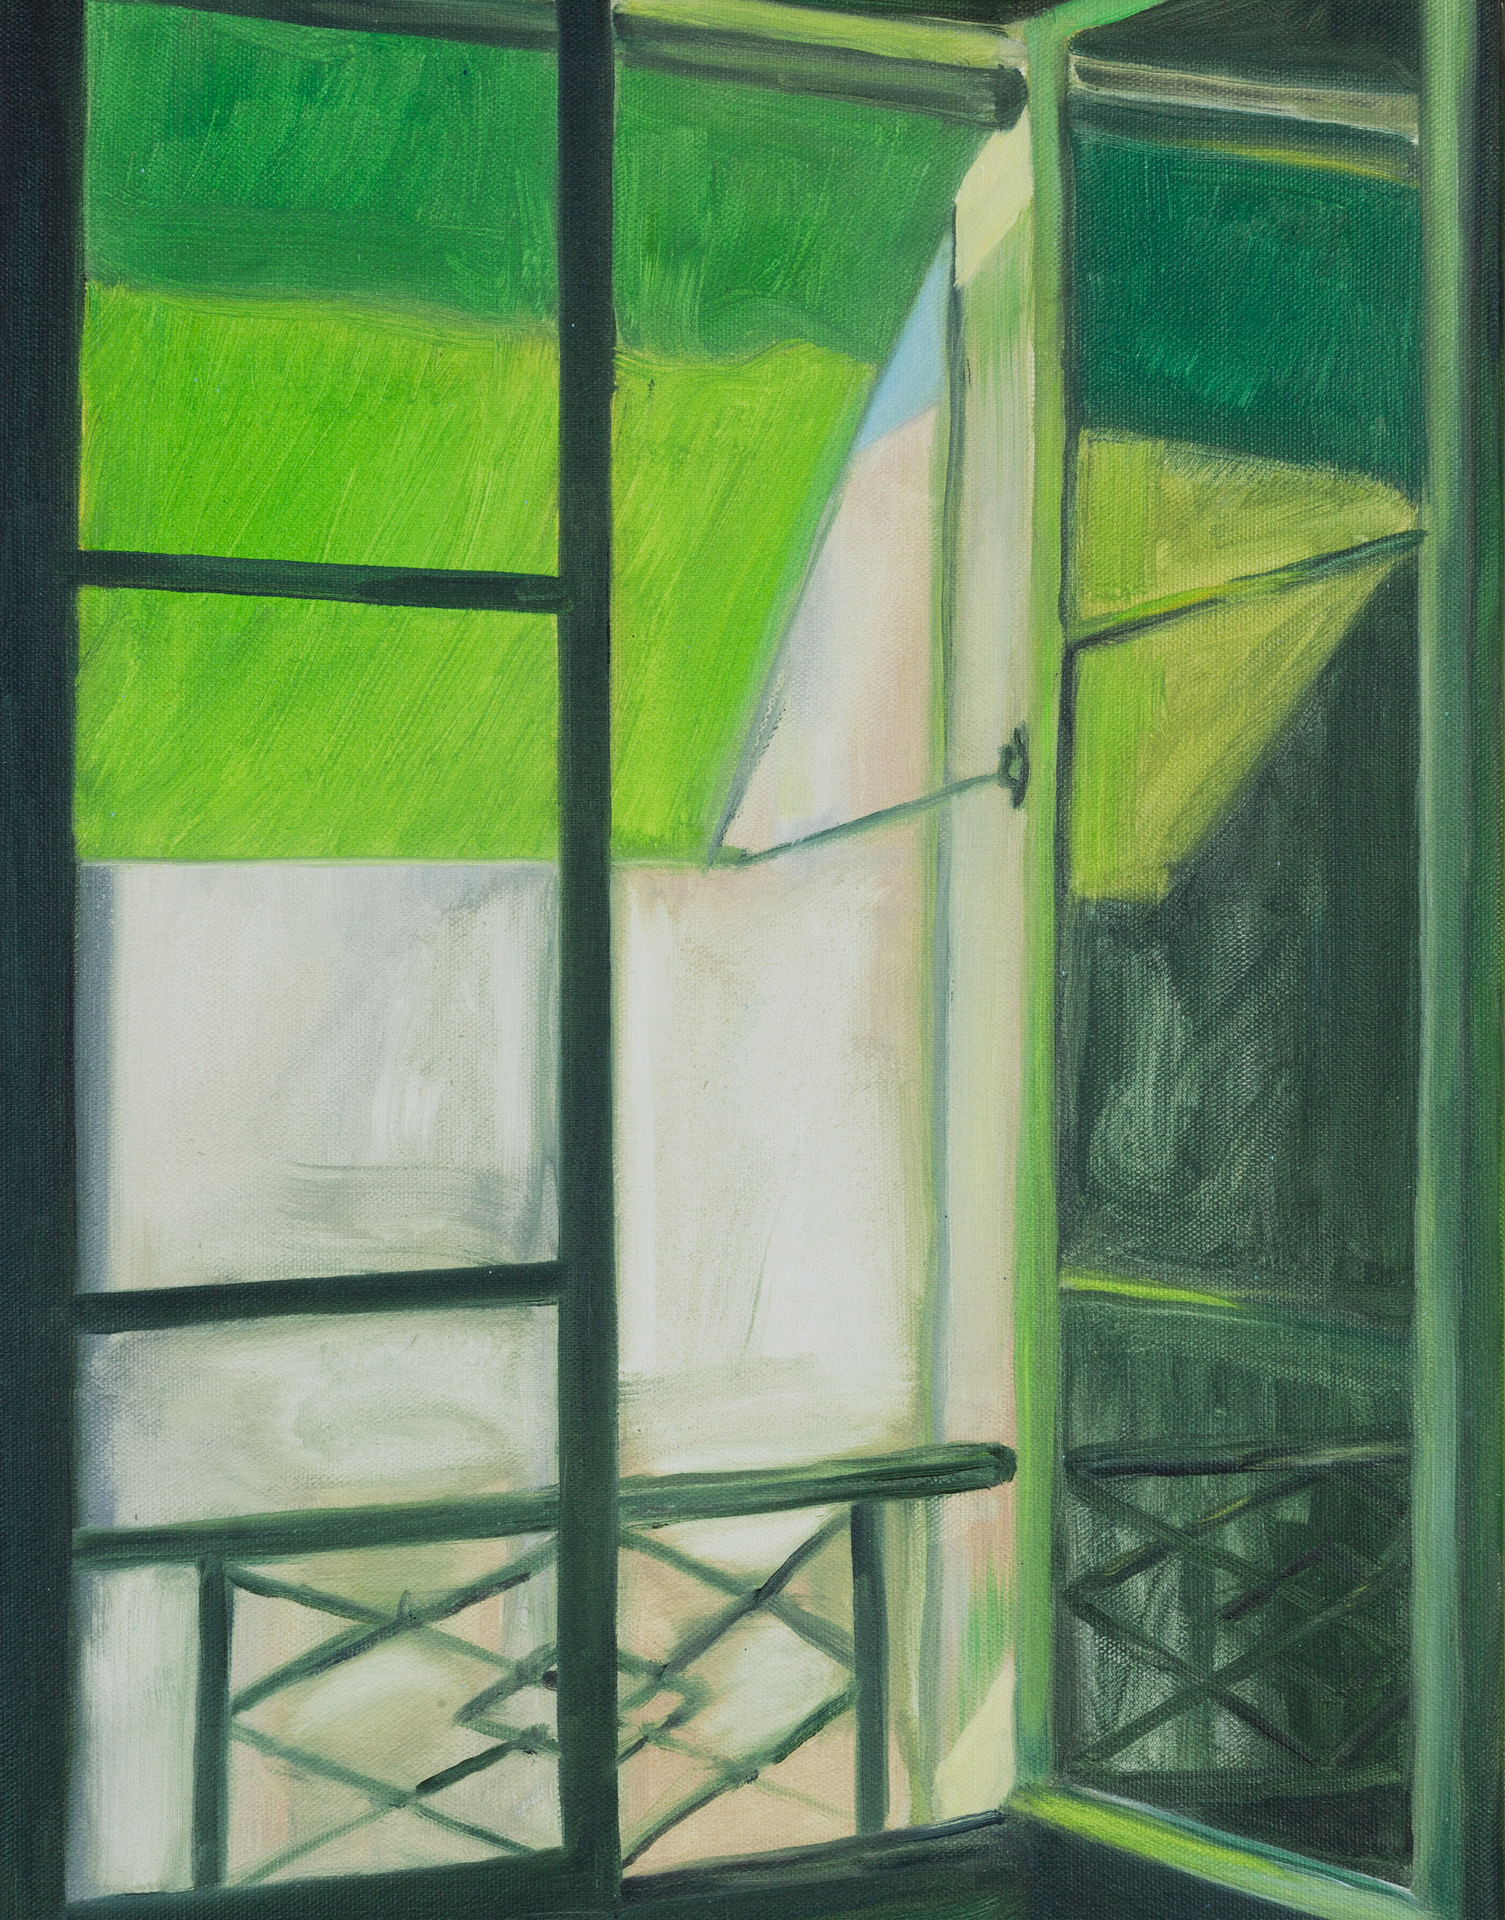 Green Window, oil paint on canvas, 18 x 14 inches